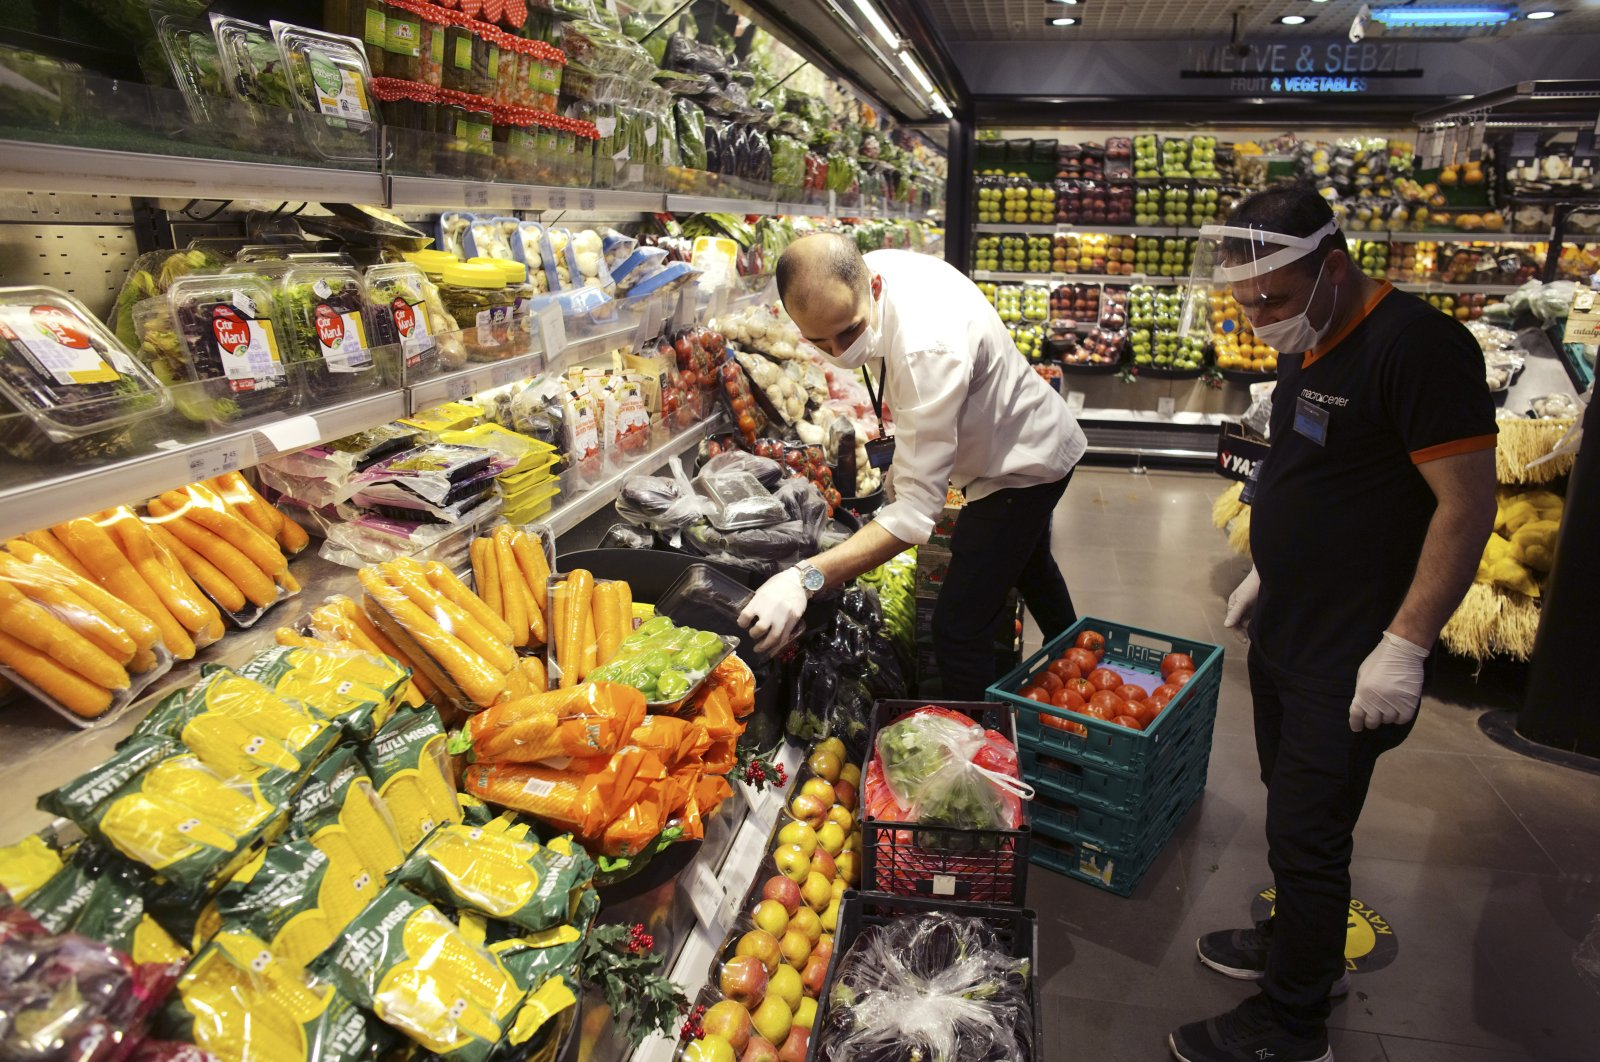 People wearing face masks to protect against the coronavirus shop for food at a grocery store, Ankara, Turkey, May 22, 2020. (AP Photo)